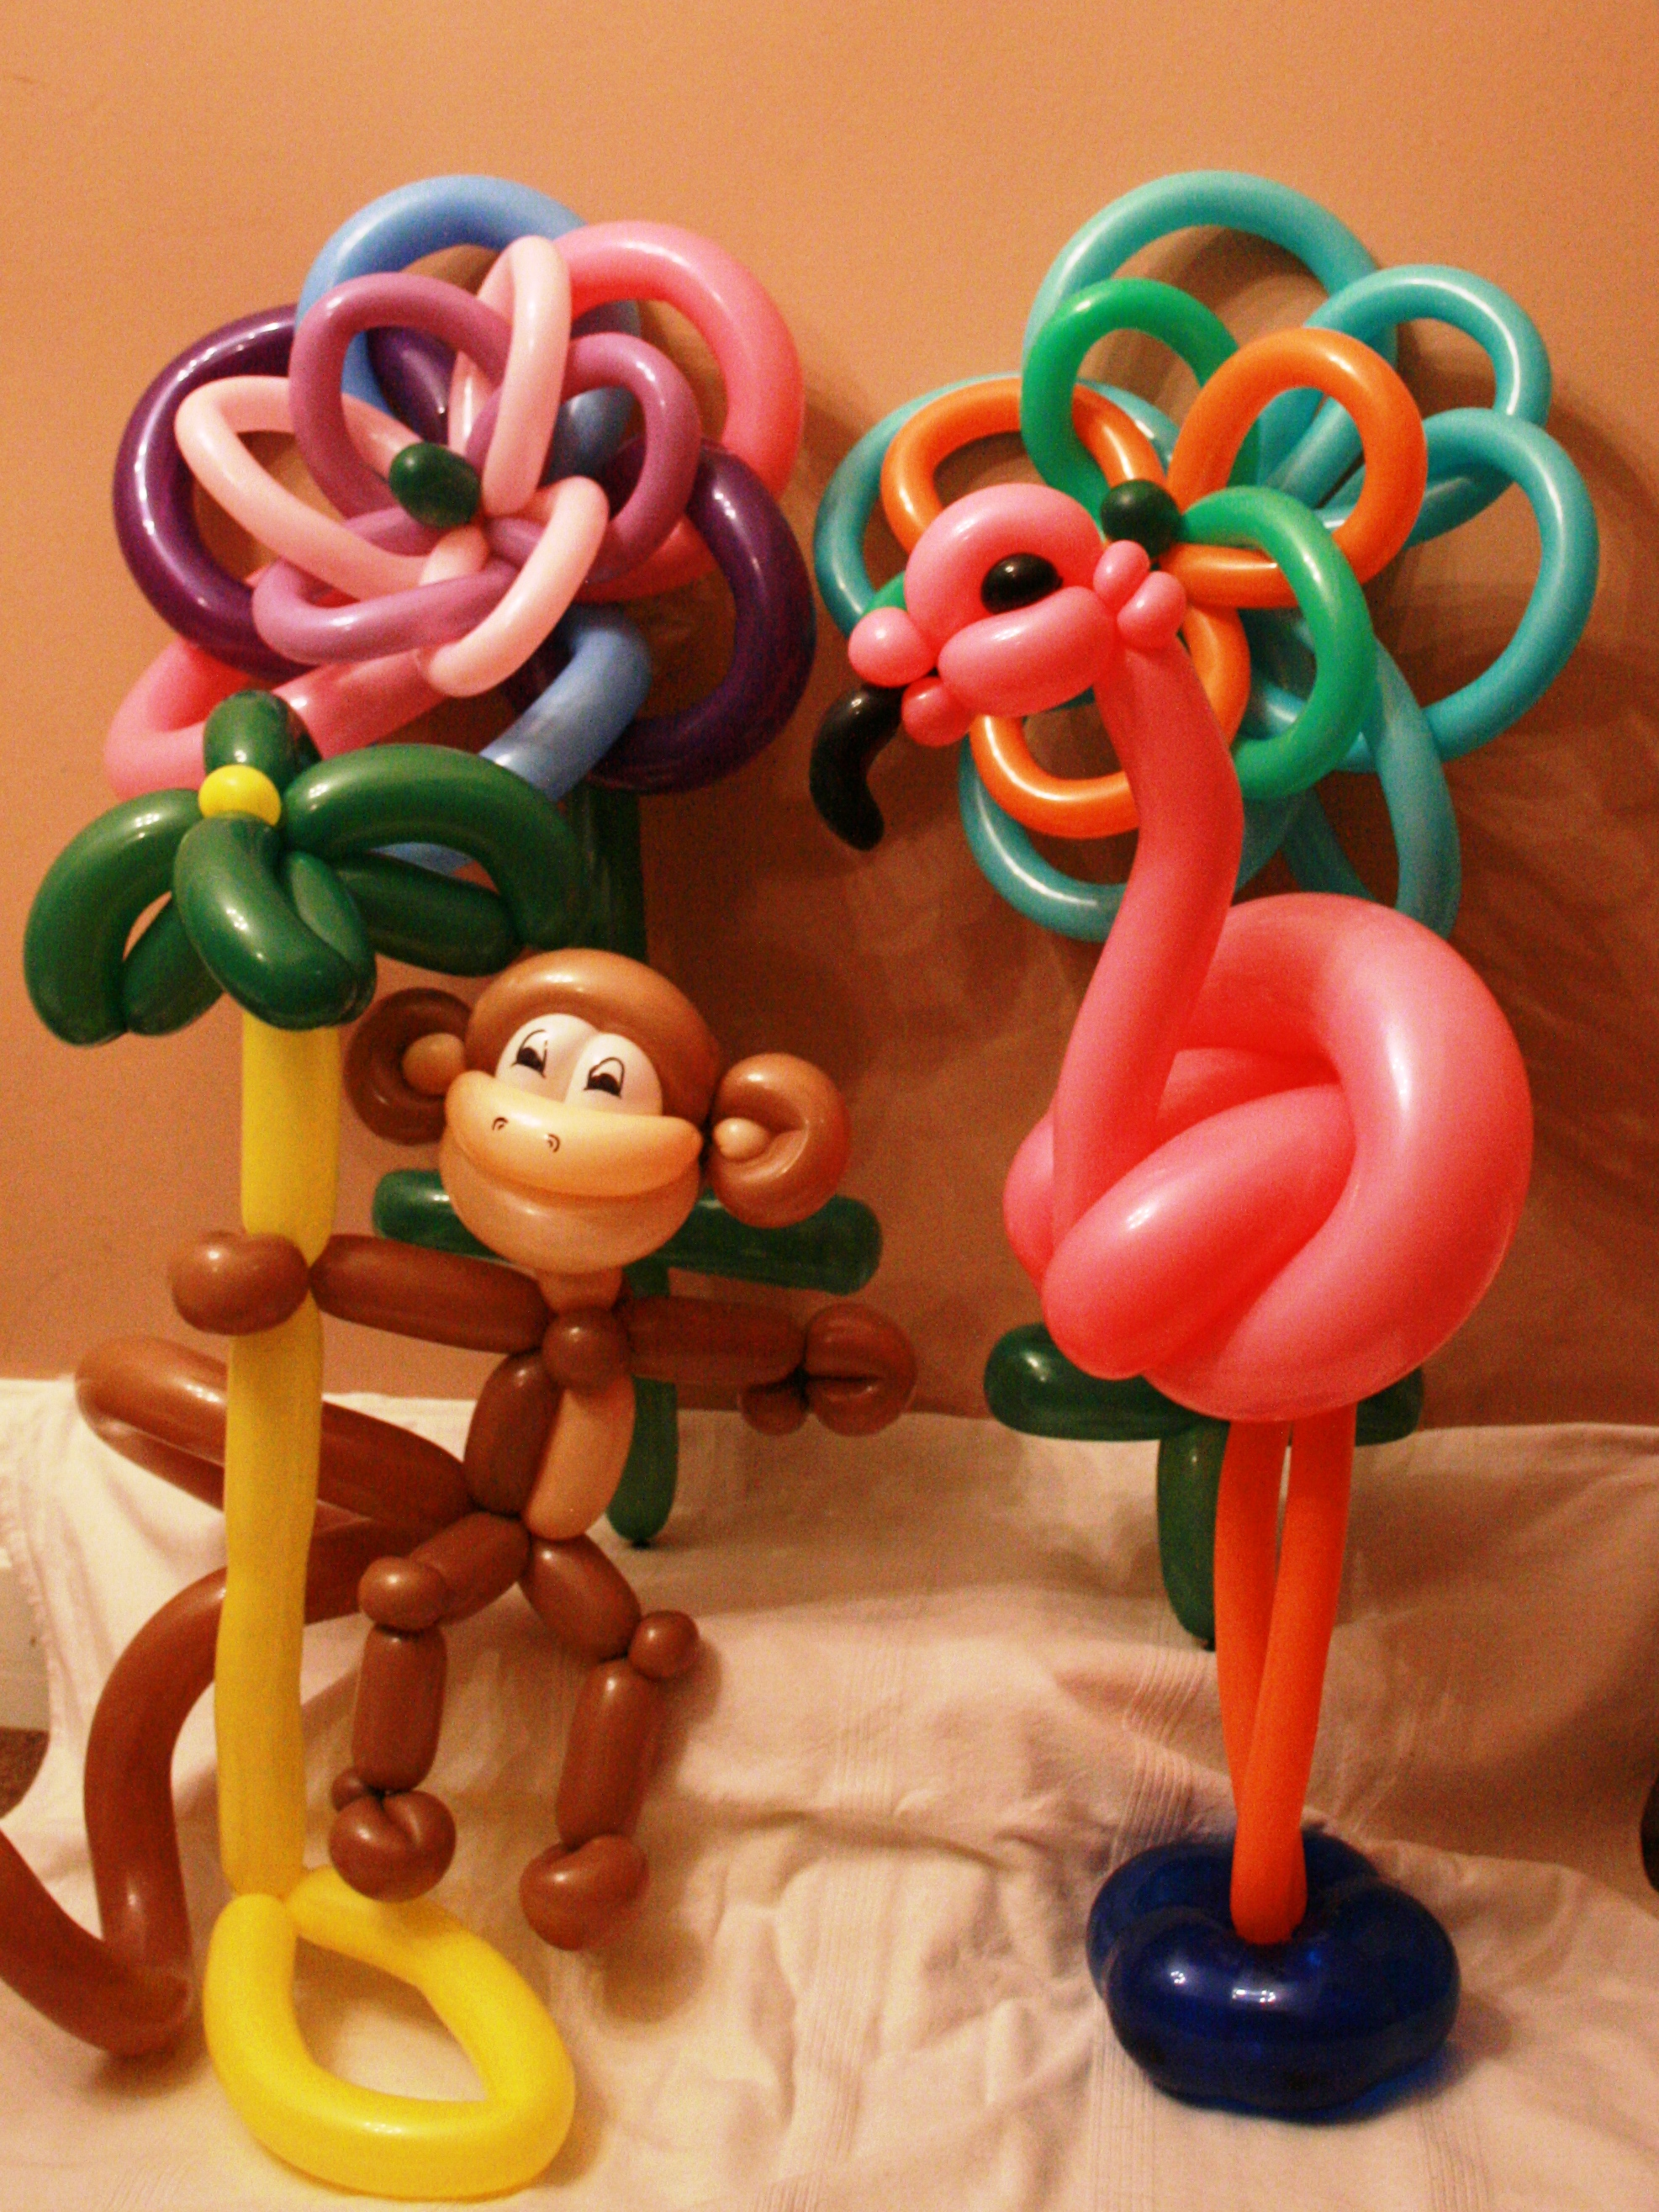 Balloon animal group.JPG